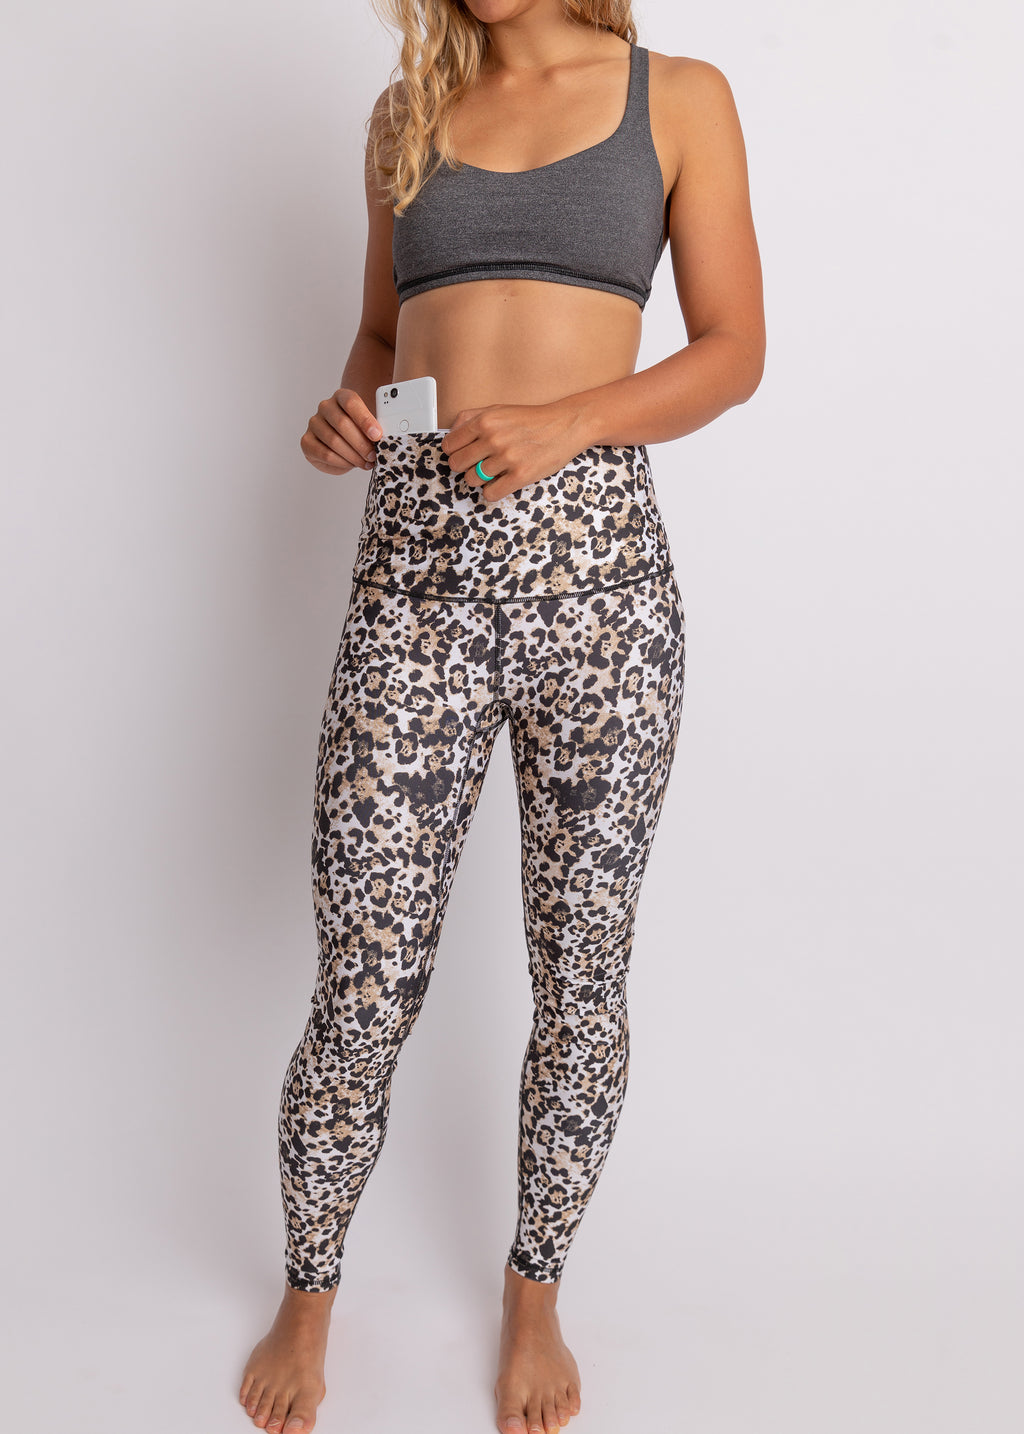 """Wild Cat"" Athletic Tights, RECYCLED - XL only!"